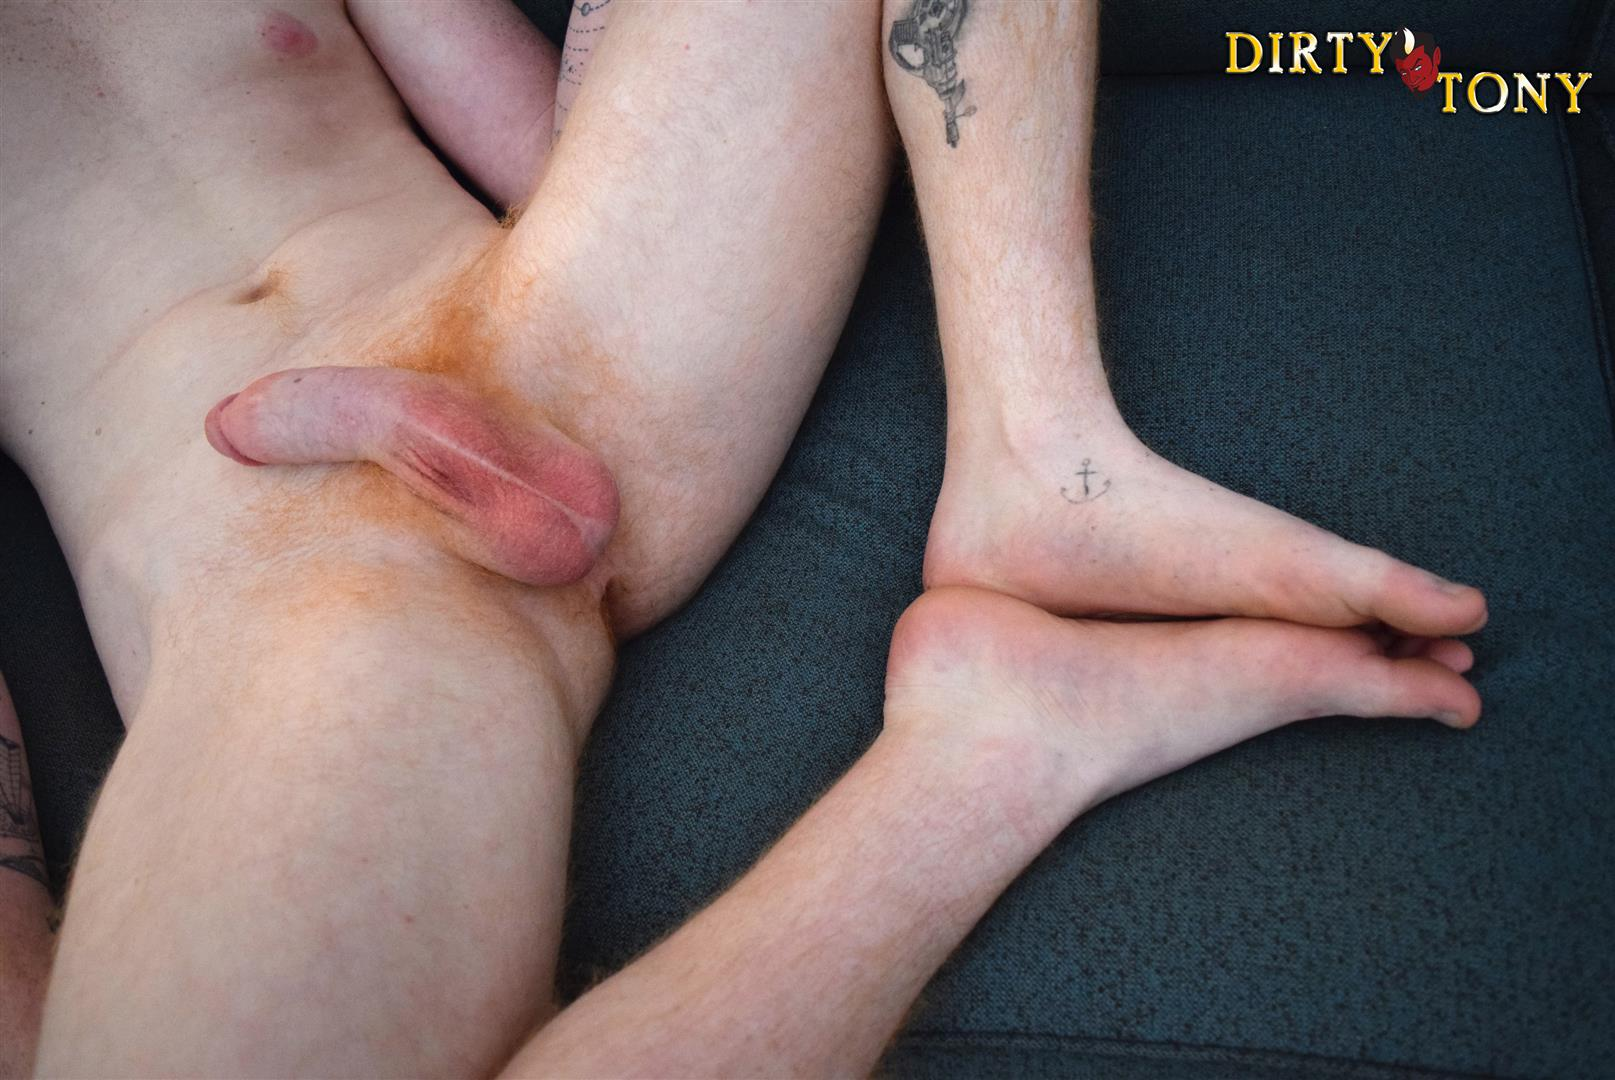 Dirty-Tony-Max-Breeker-Redheaded-Twink-Masturbation-Amateur-Gay-Porn-07 Bisexual 19 Year Old Redheaded Twink Auditions For Gay Porn